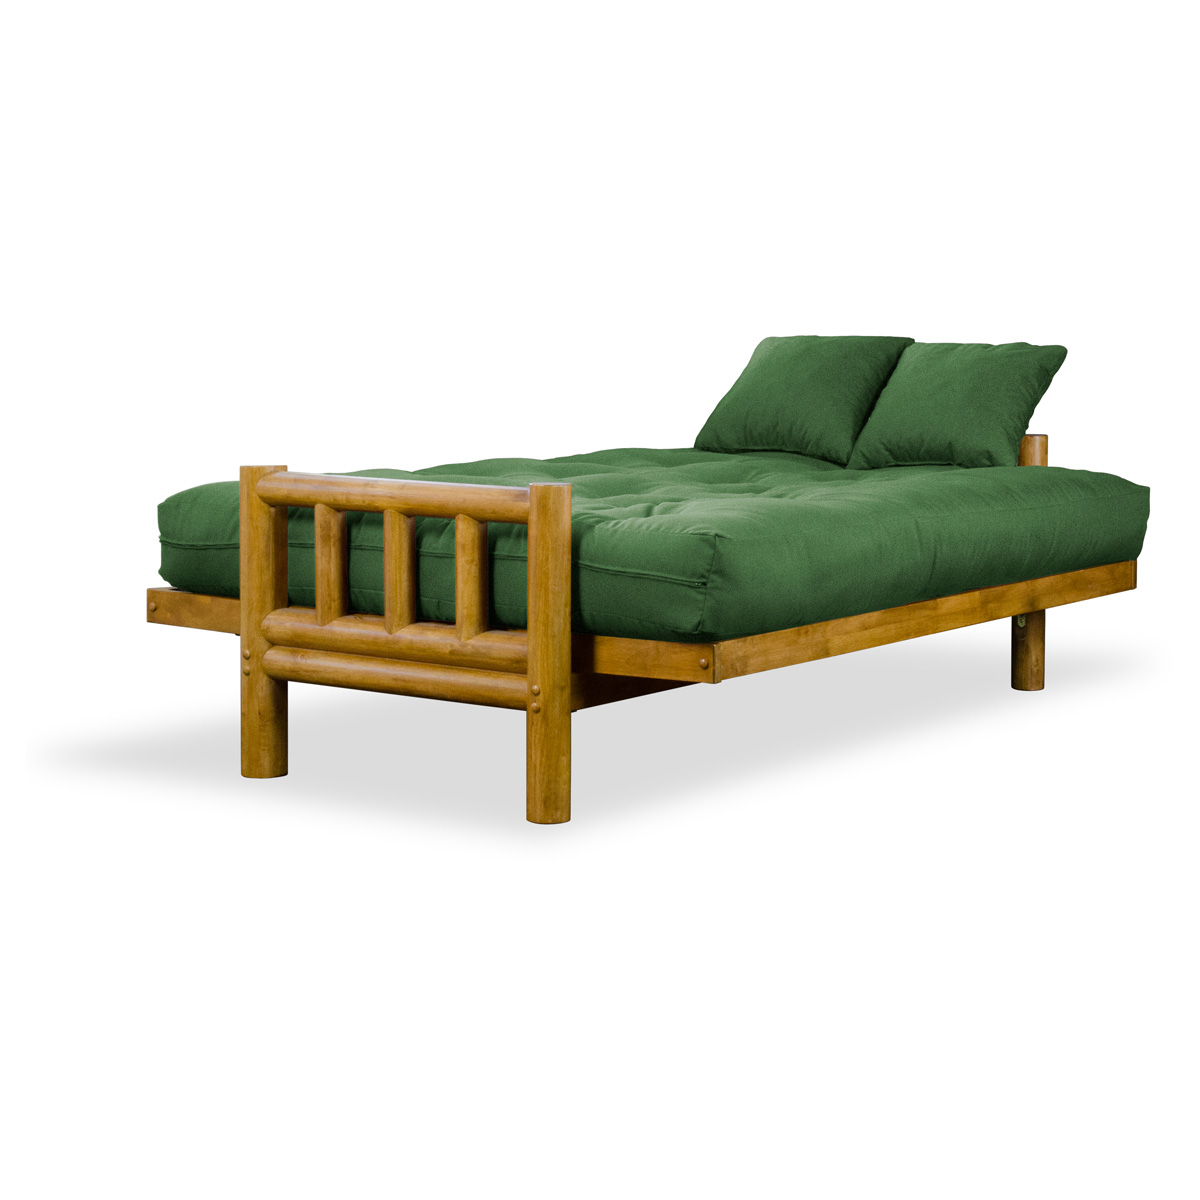 Tahoe Log Futon Frame - Hertitage Finish - NF-TLOG